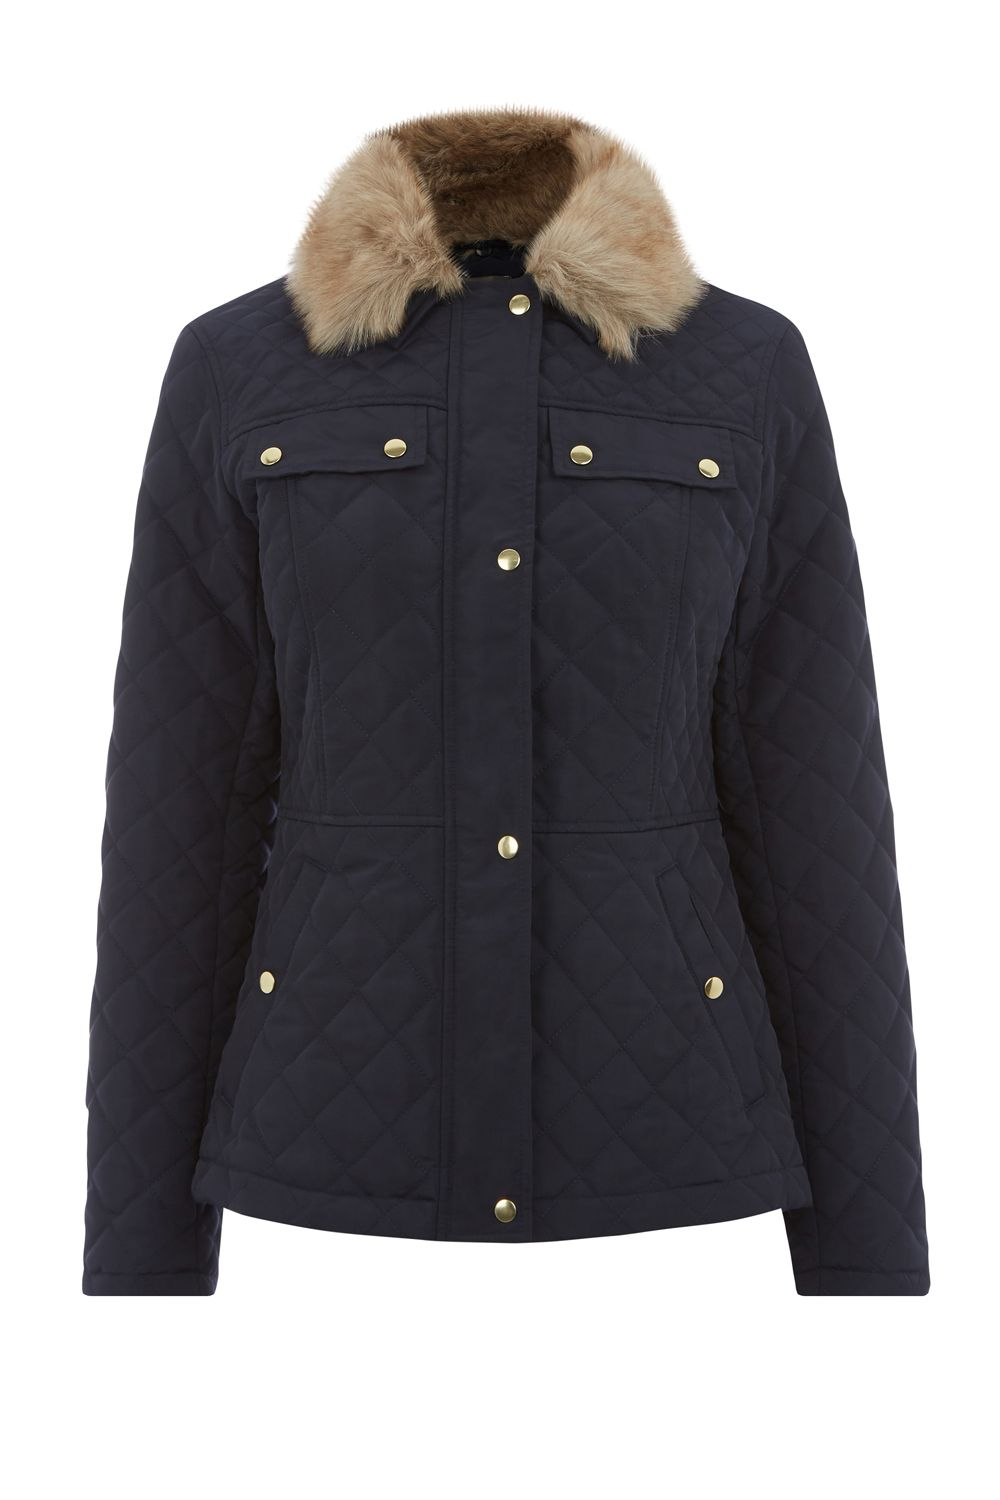 Oasis Quilted Jacket, Blue